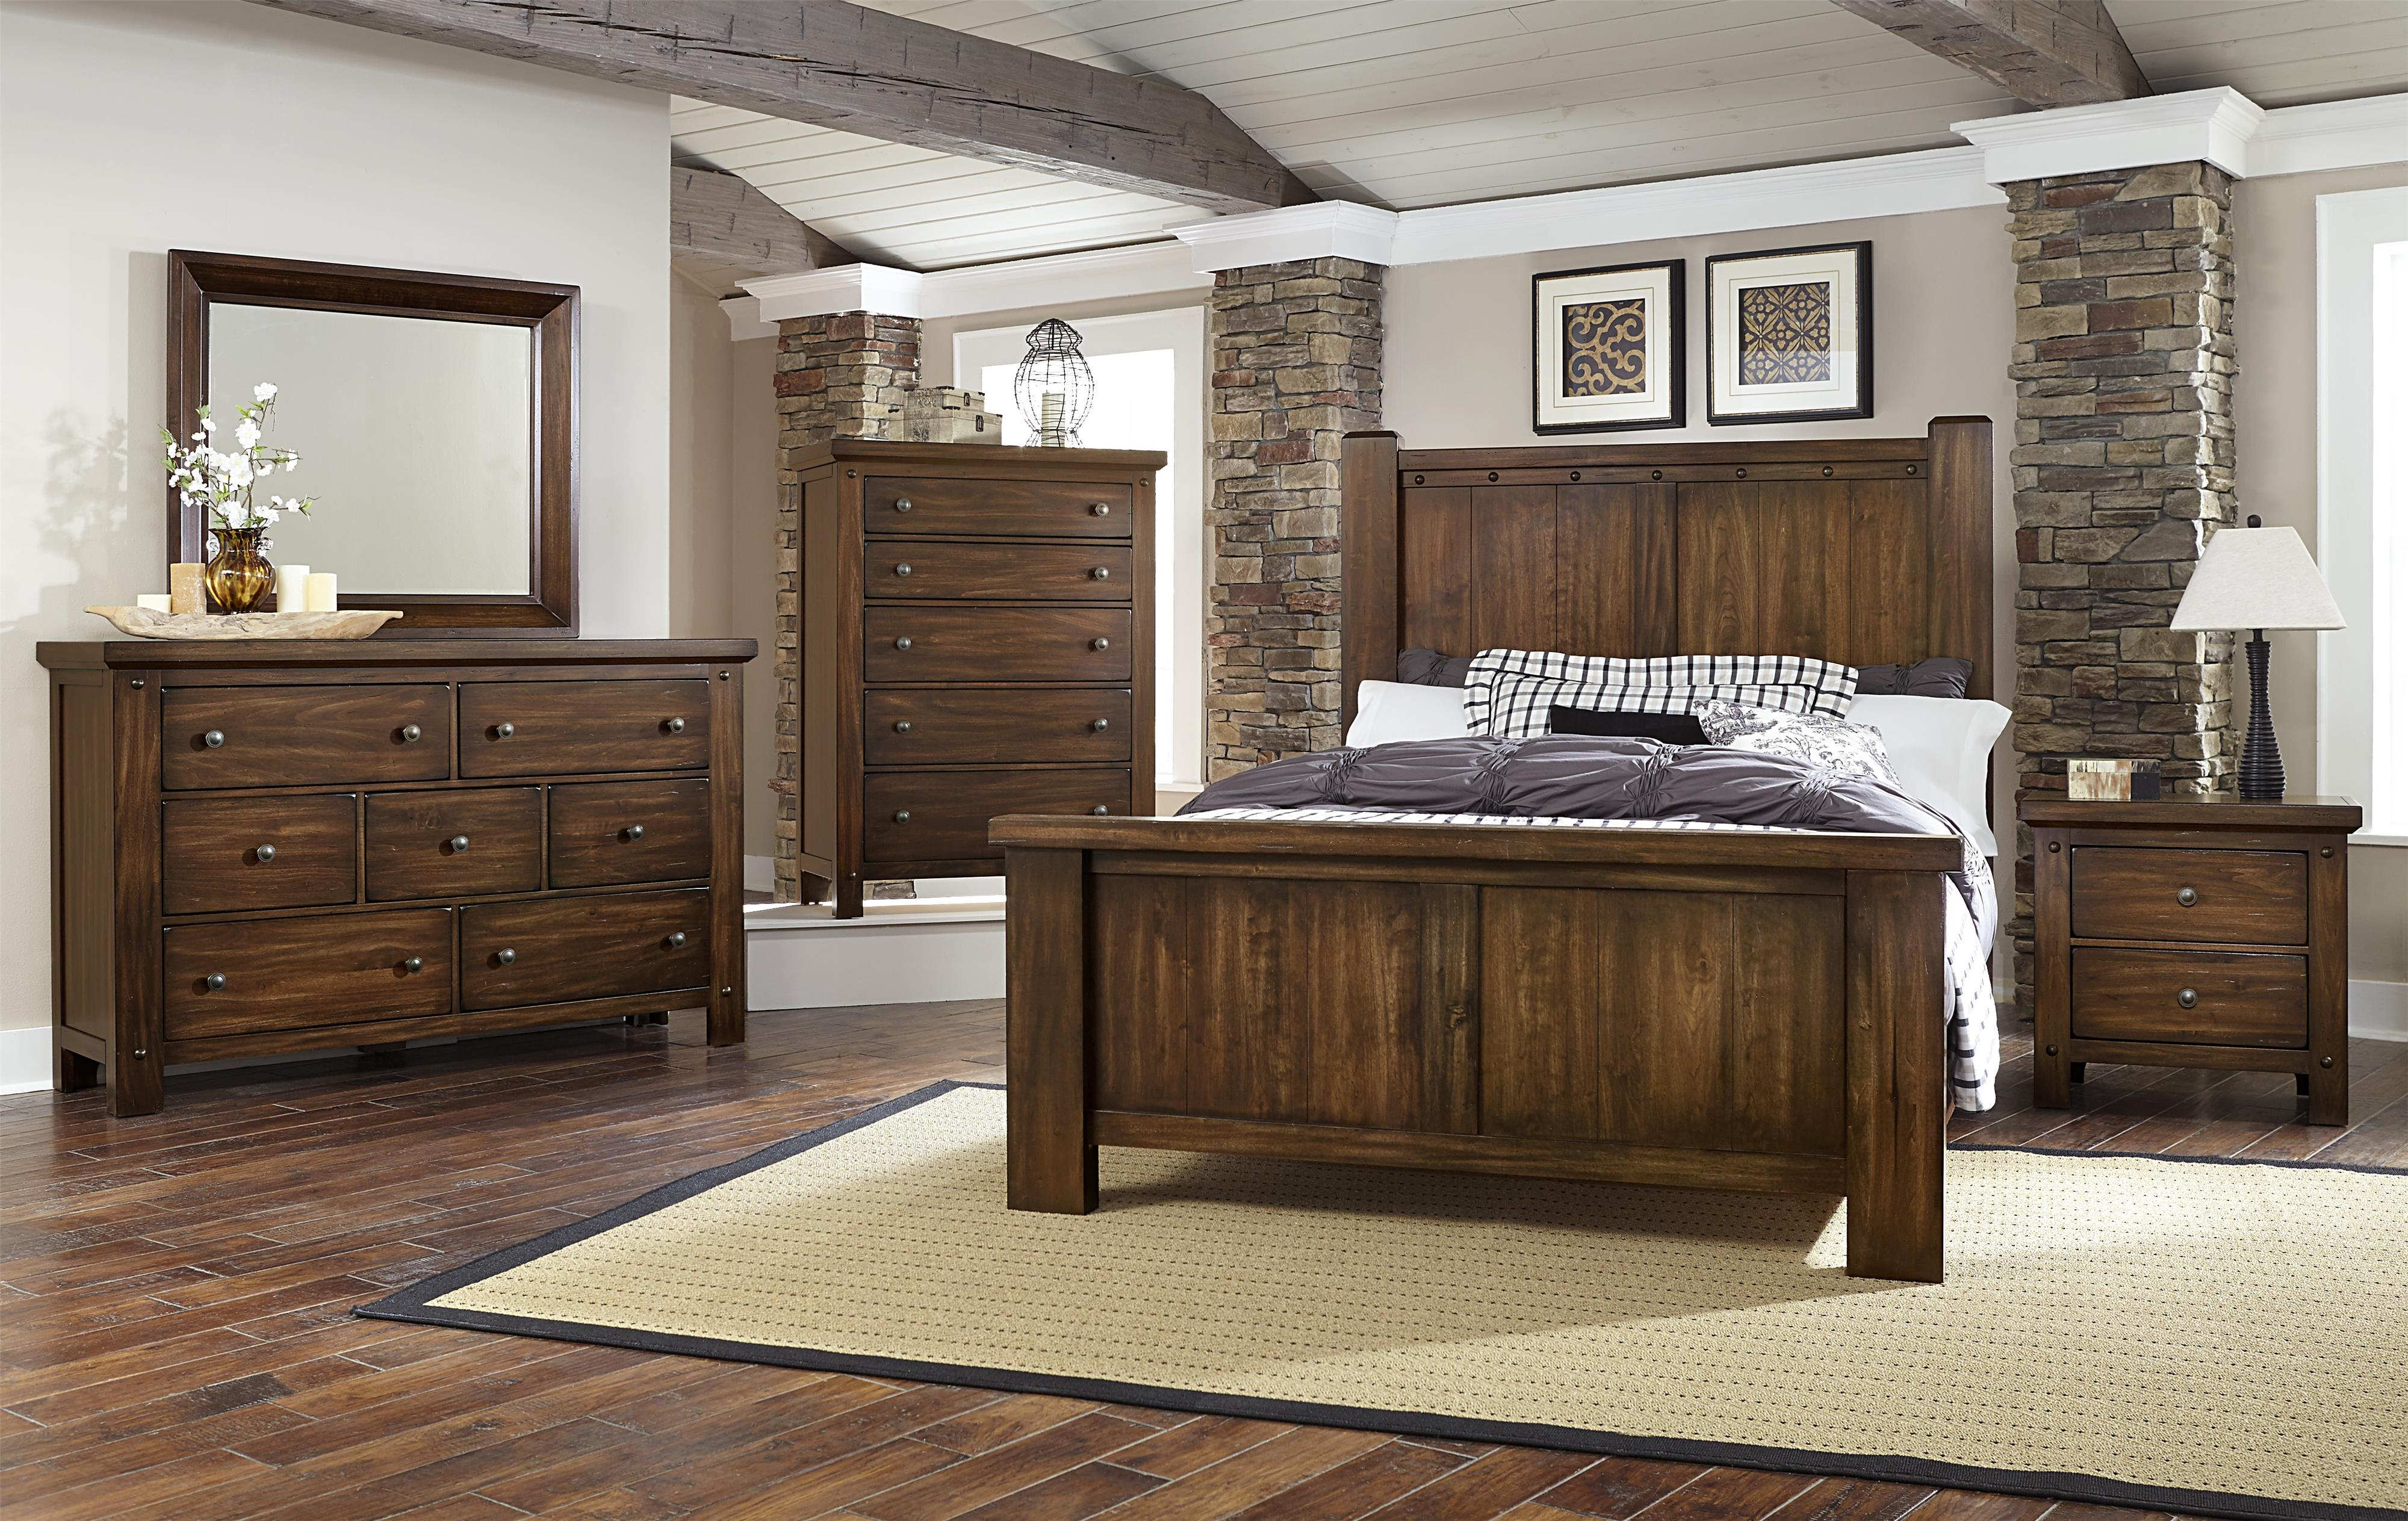 Vaughan Bassett Collaboration King Bedroom Group - Item Number: 612 K Bedroom Group 2